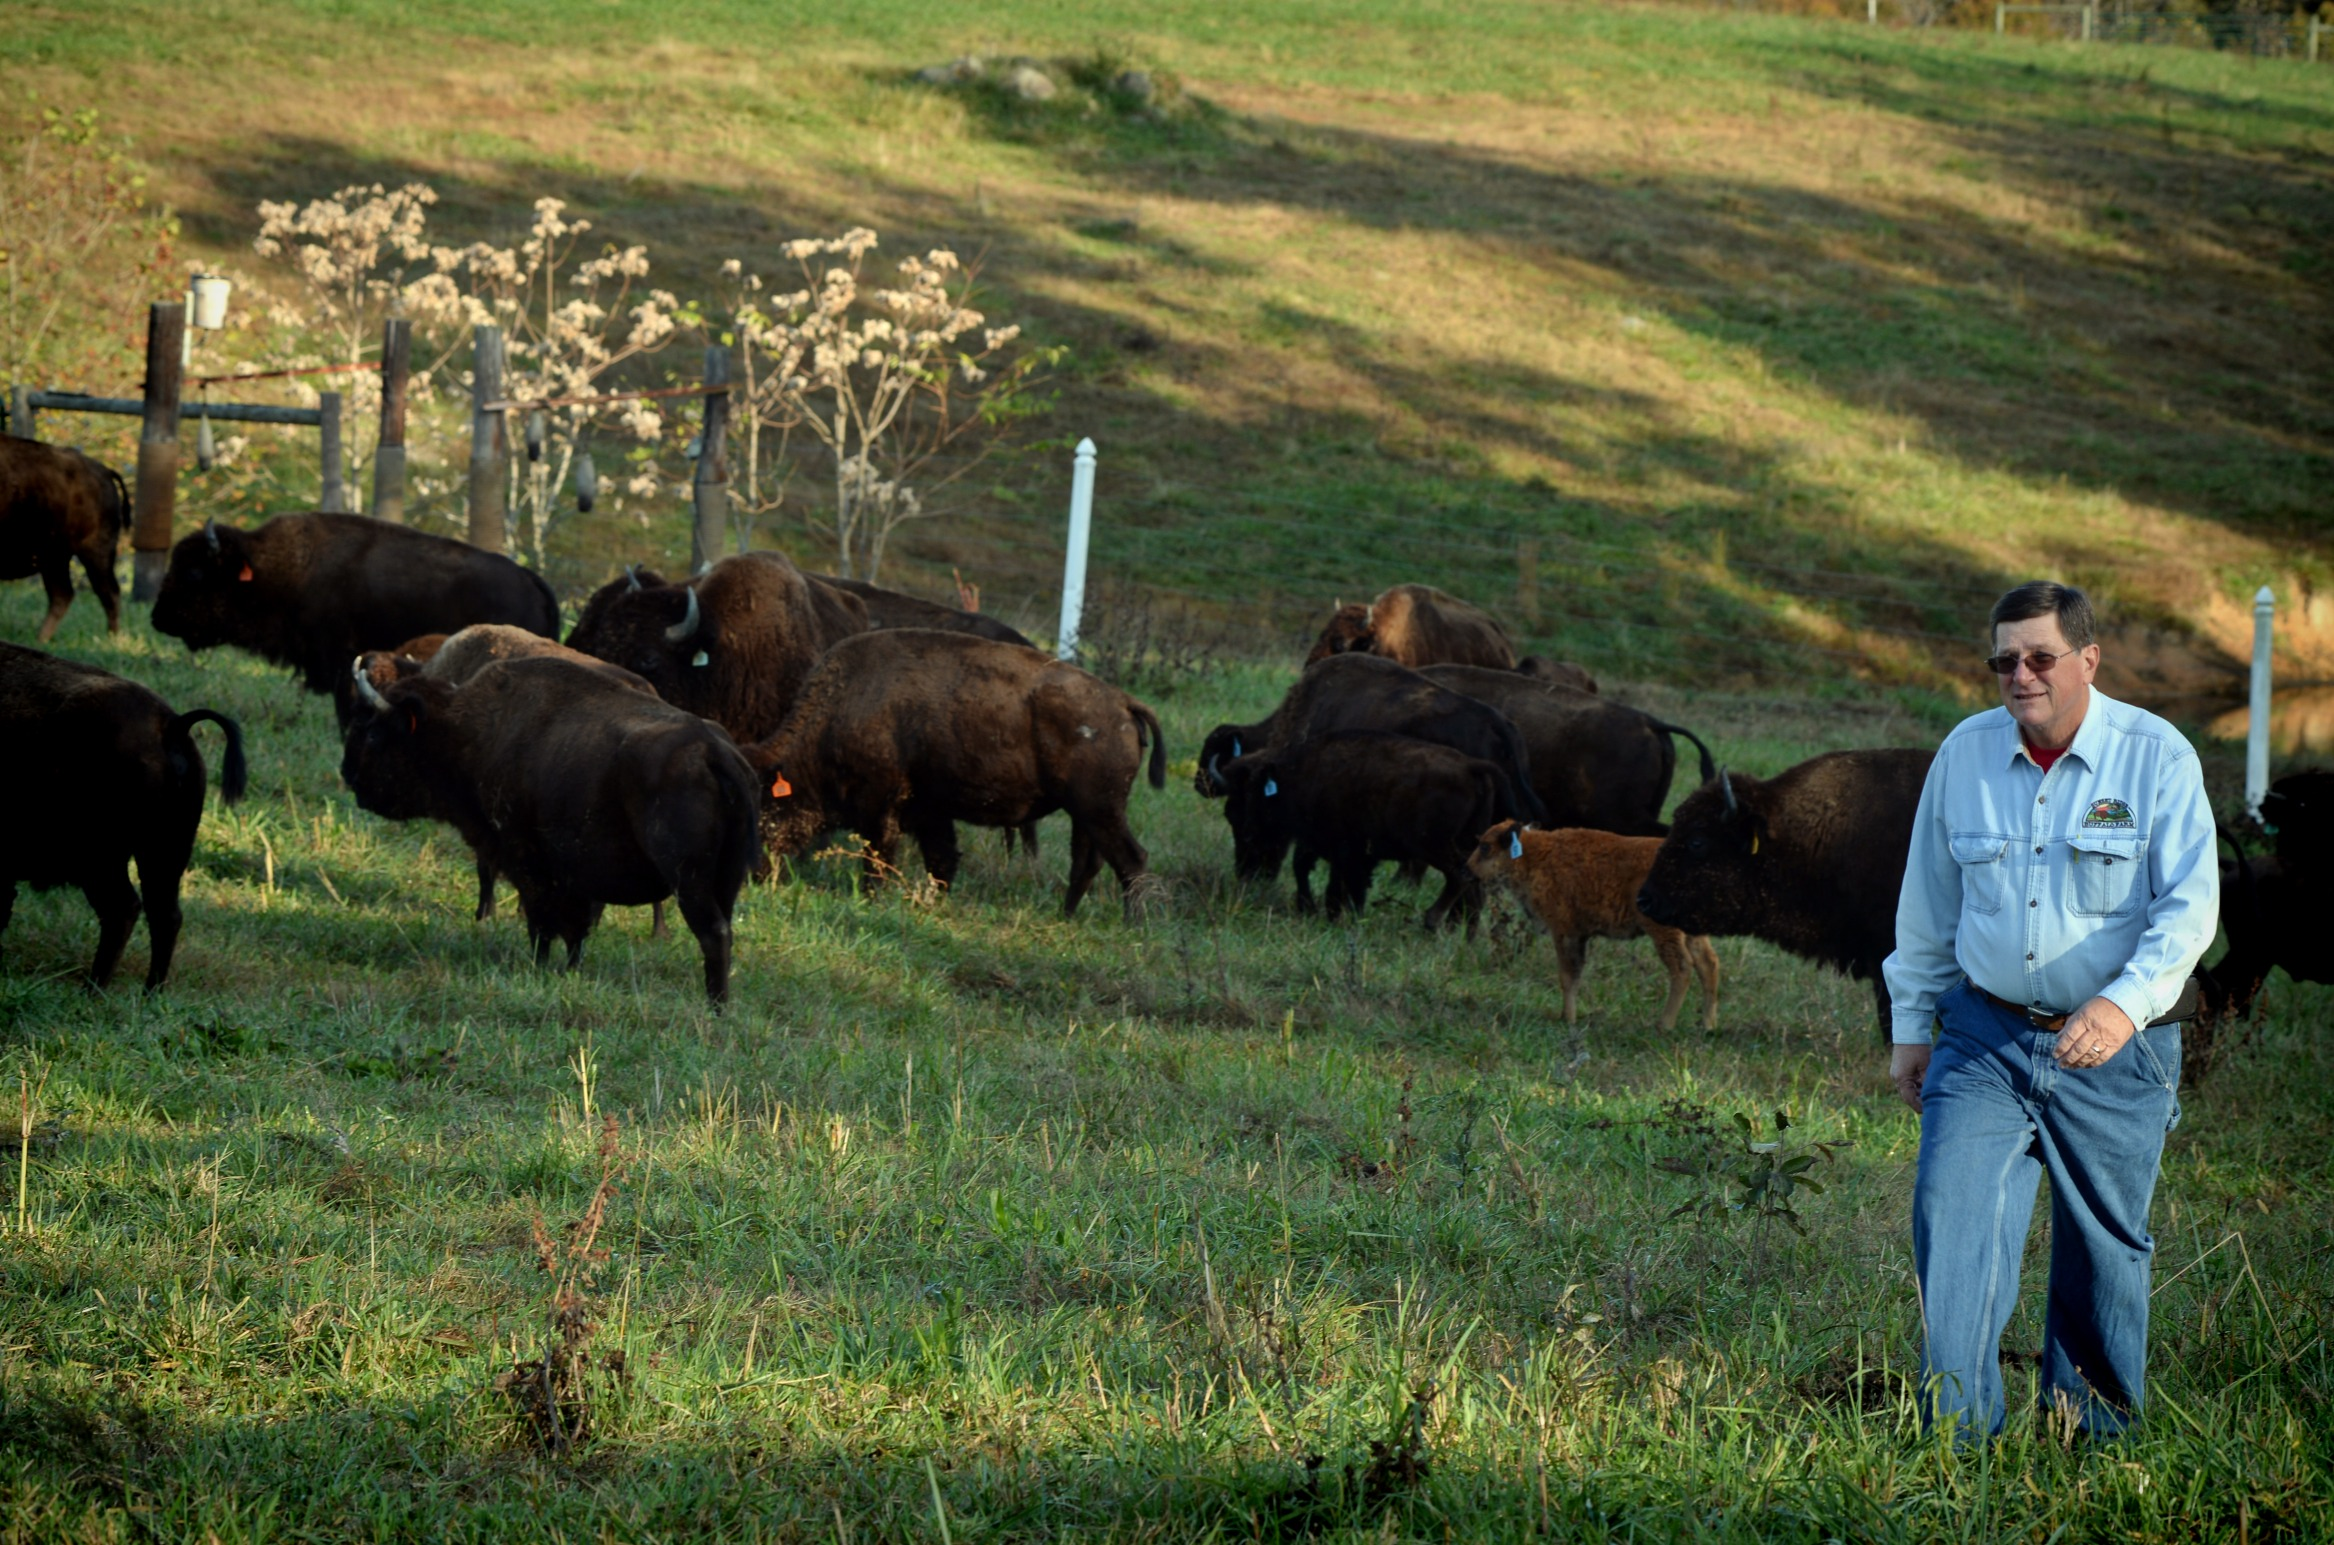 Views of Jack Pleasant and the Sunset Ridge Buffalo Farm near Roxboro, NC.